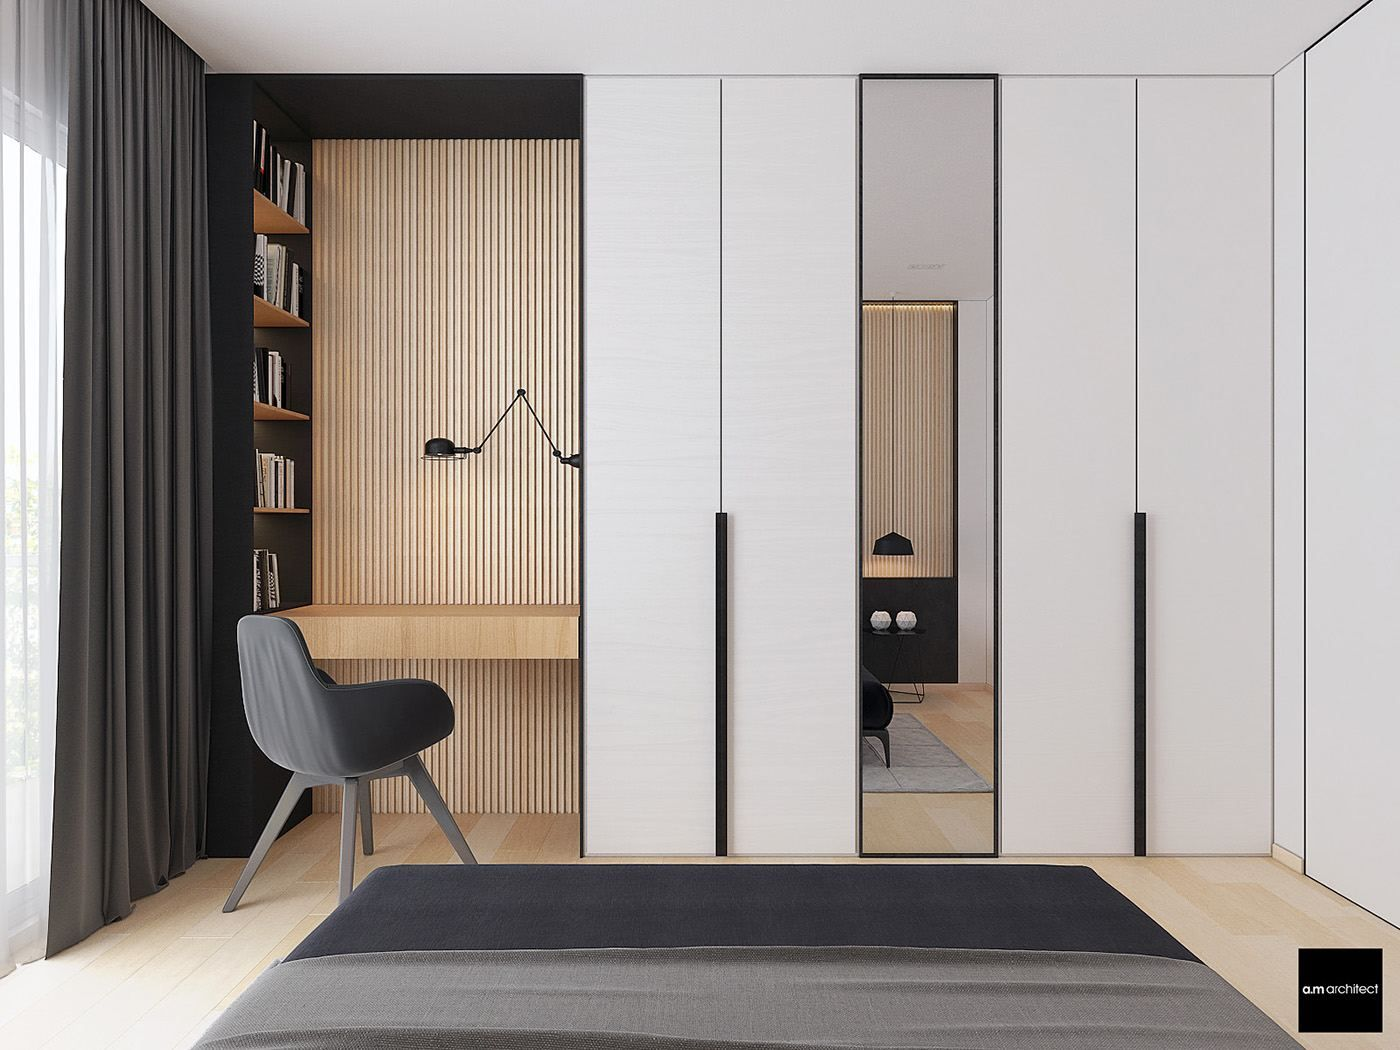 furniture sliding bedrooms stunning inspirations modern wardrobe a ideas bedroom beautiful luxury design doors mirror with designs including for glass wardrobes